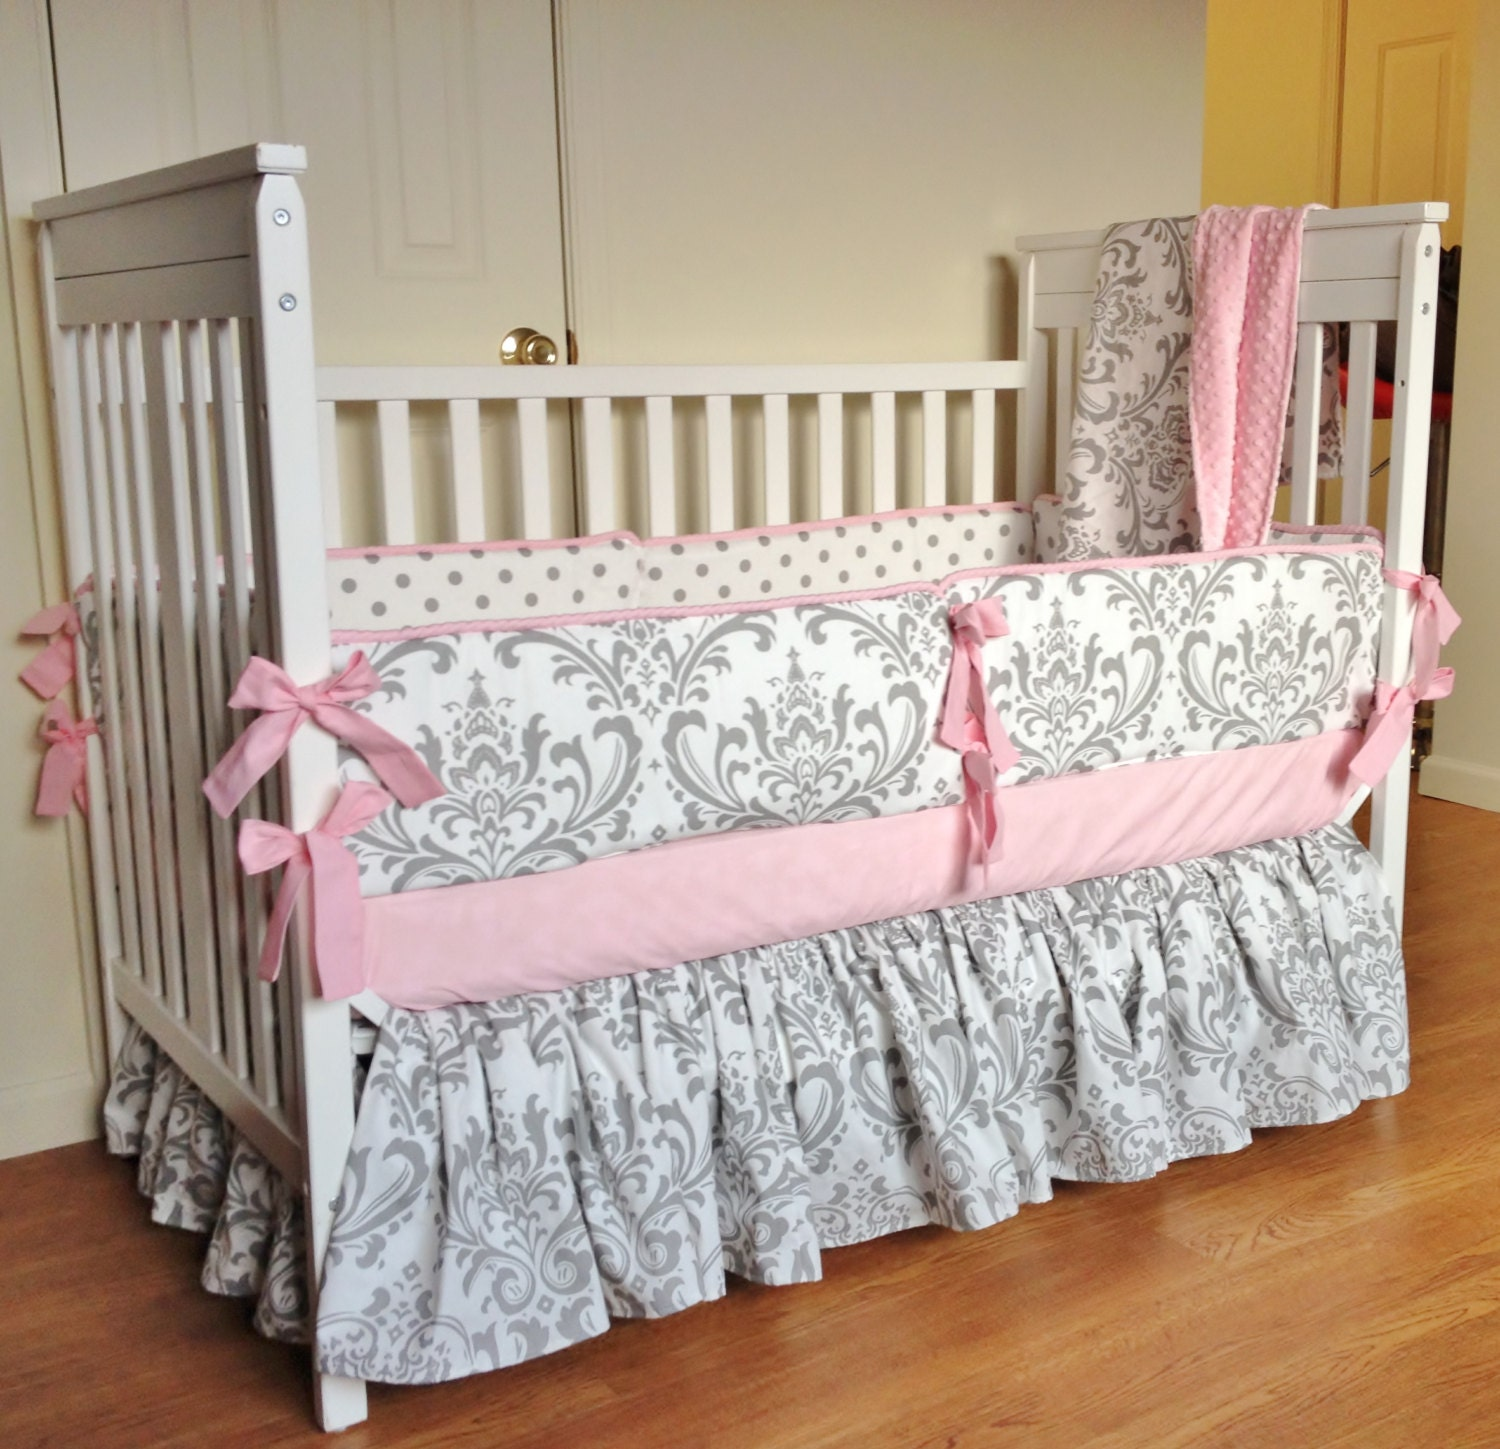 Crib bedding baby girl bedding set pink gray damask by Baby girl bedding